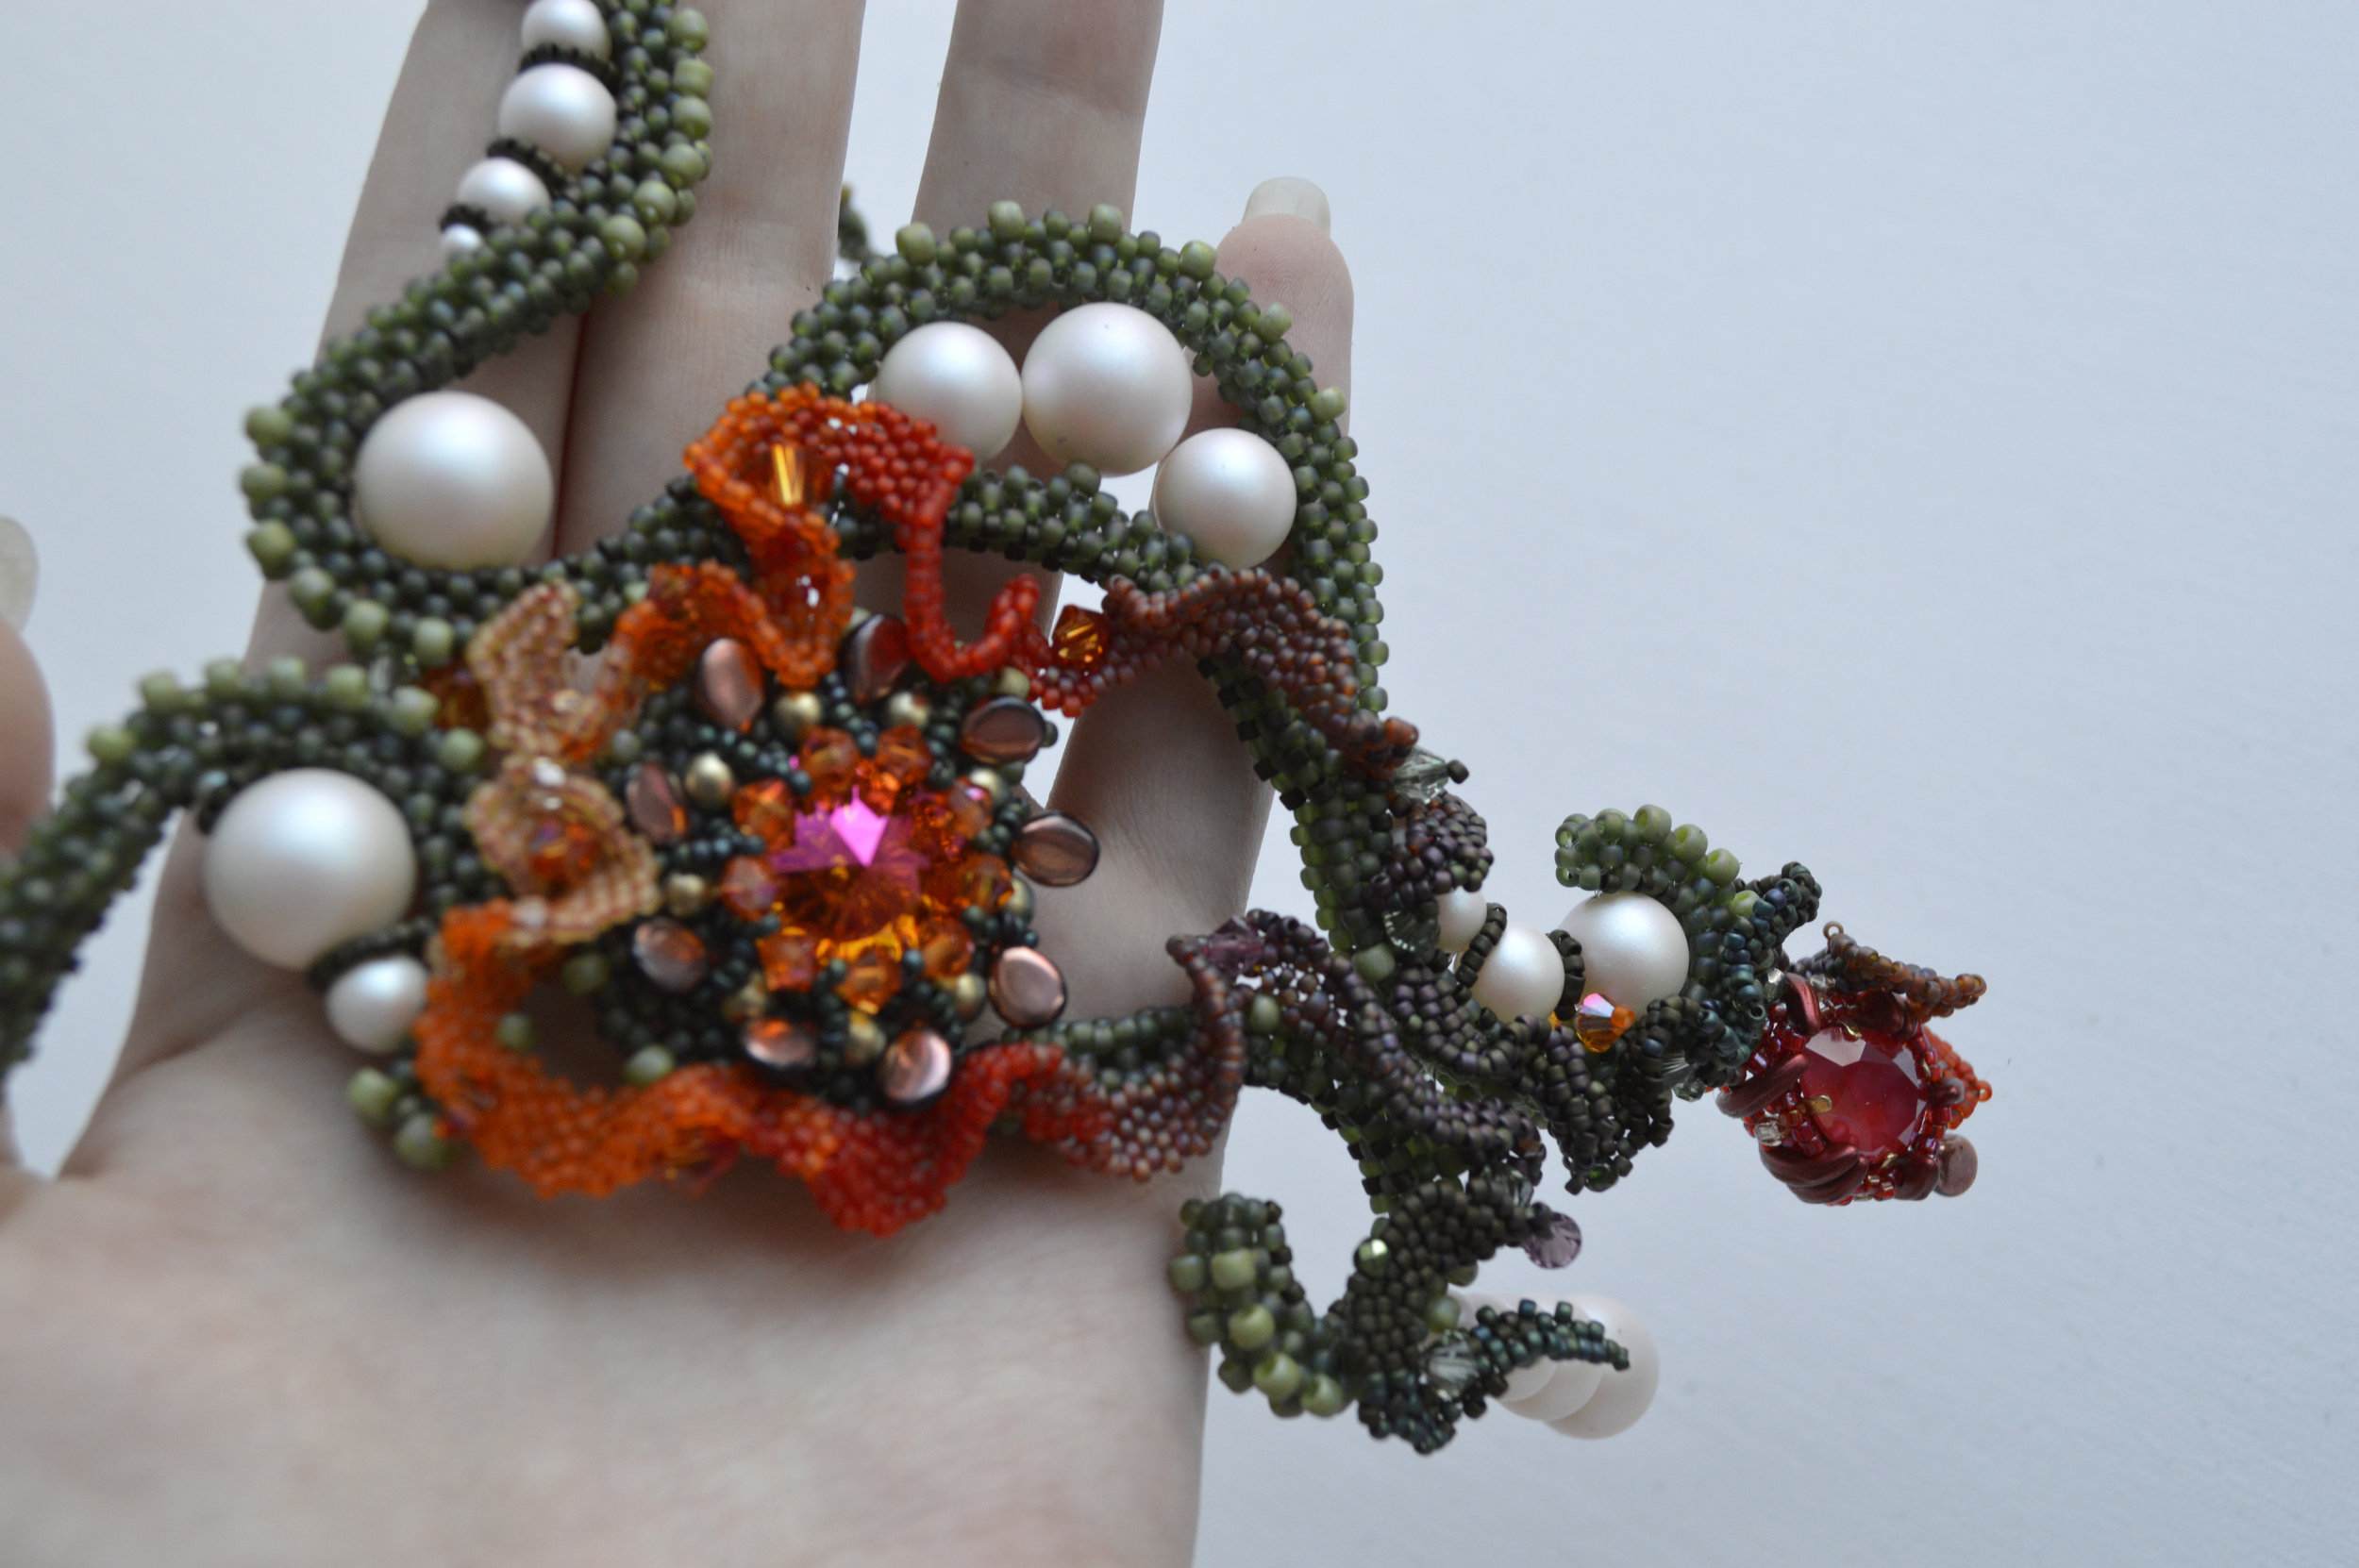 Marta Strelkina - Prize: $20 Giftcard to a bead store